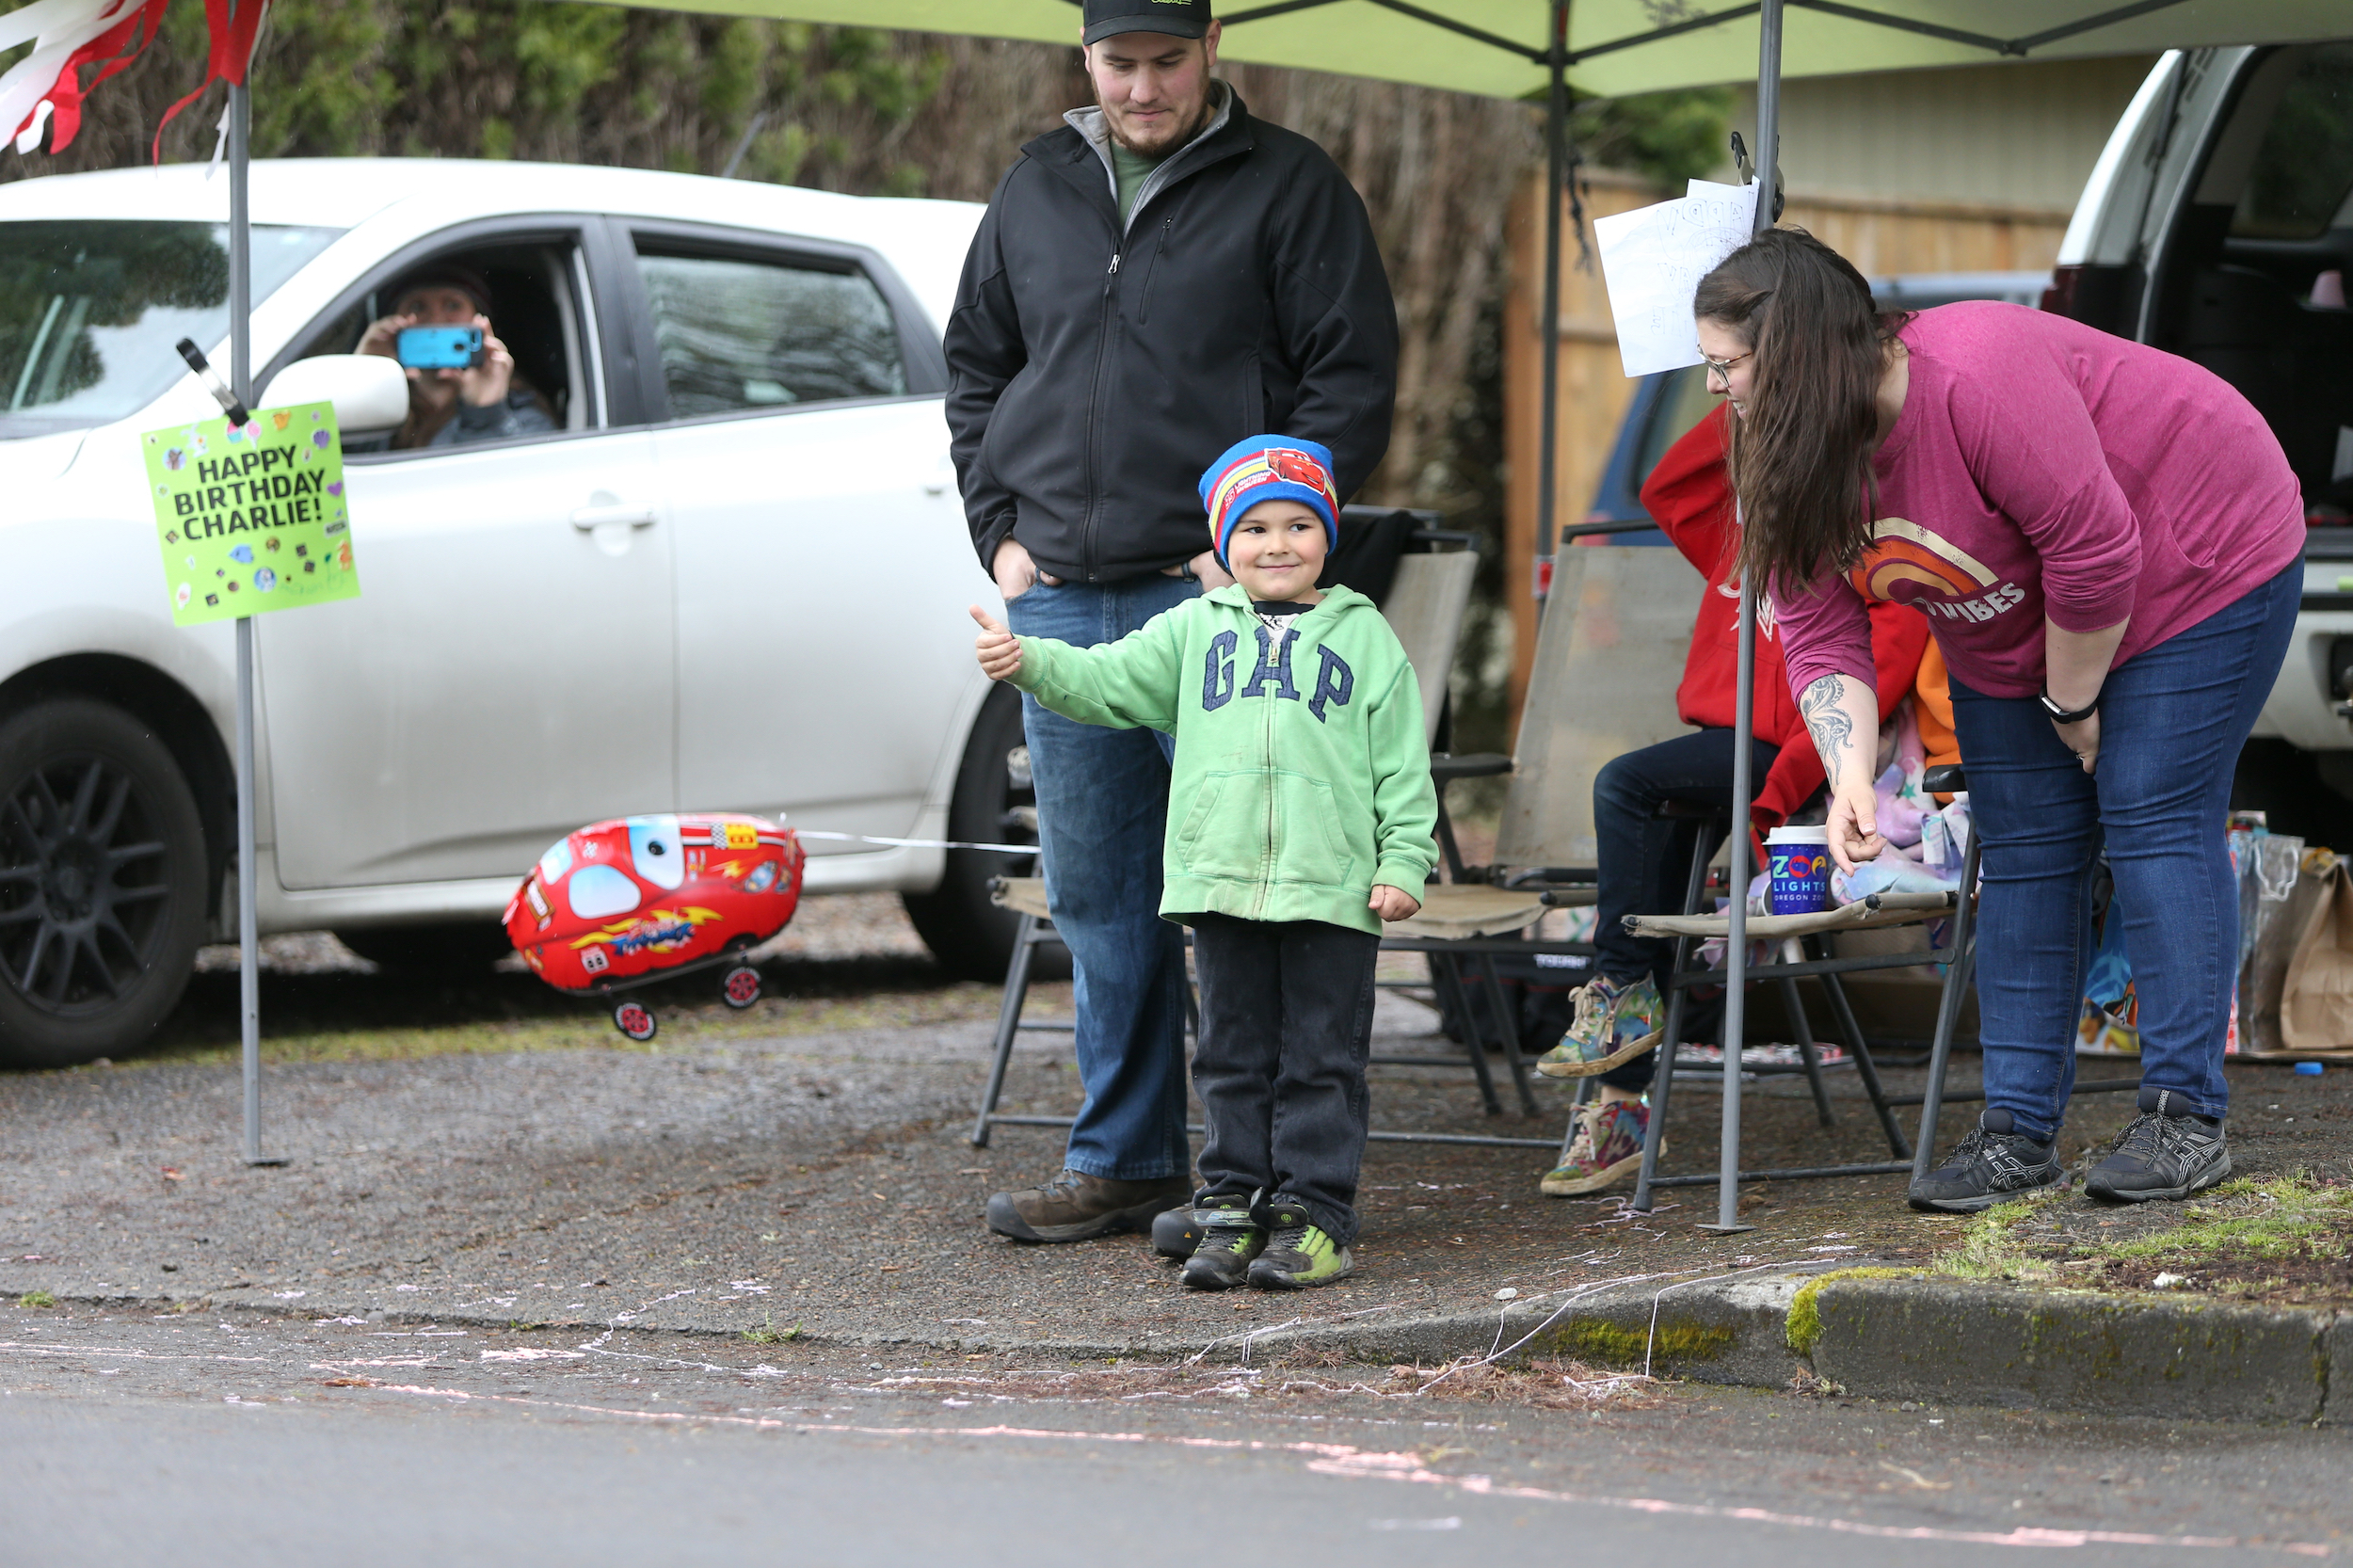 Drive By Birthday Parades Are The New Way To Celebrate At A Distance Oregonlive Com